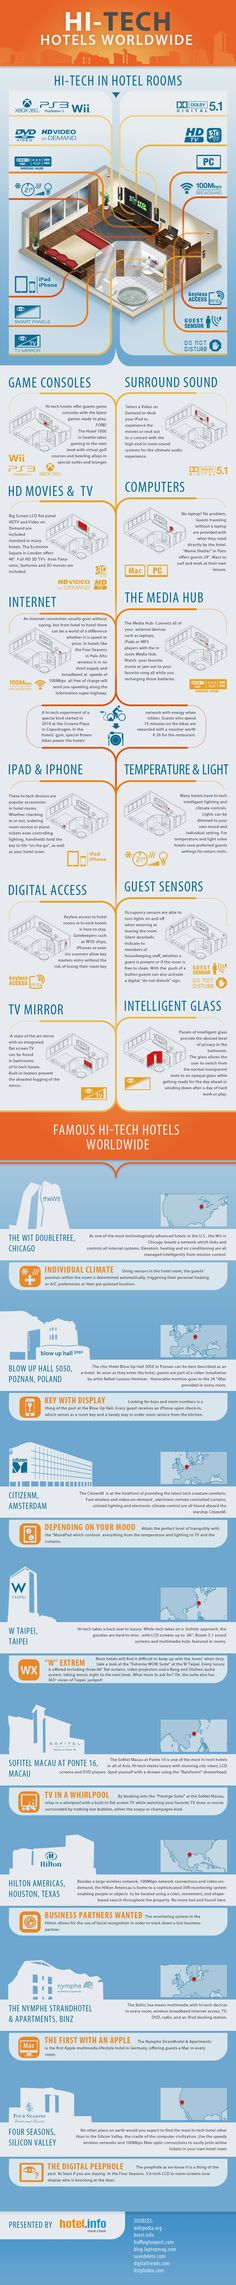 The Future Is Now for Tech Friendly Hotels and Their Guests